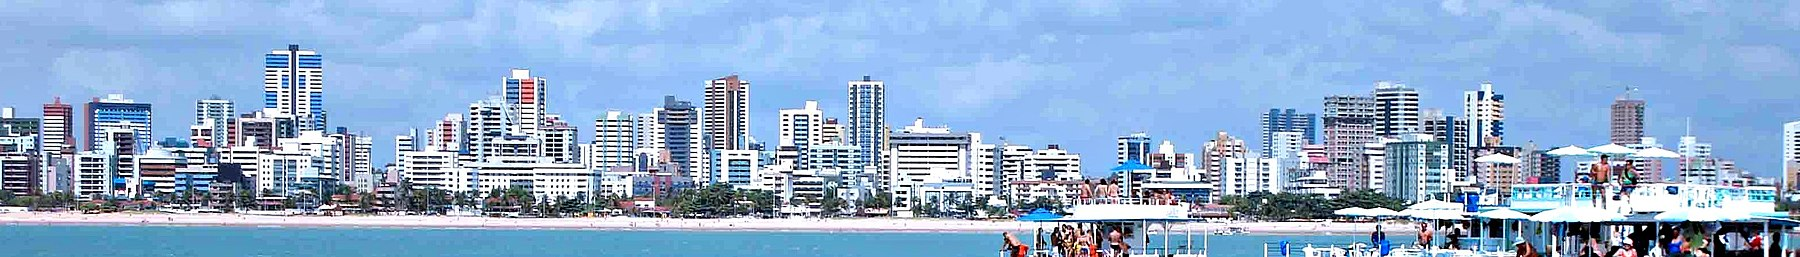 WV banner Paraiba Joao Pessao skyline and beach.jpg